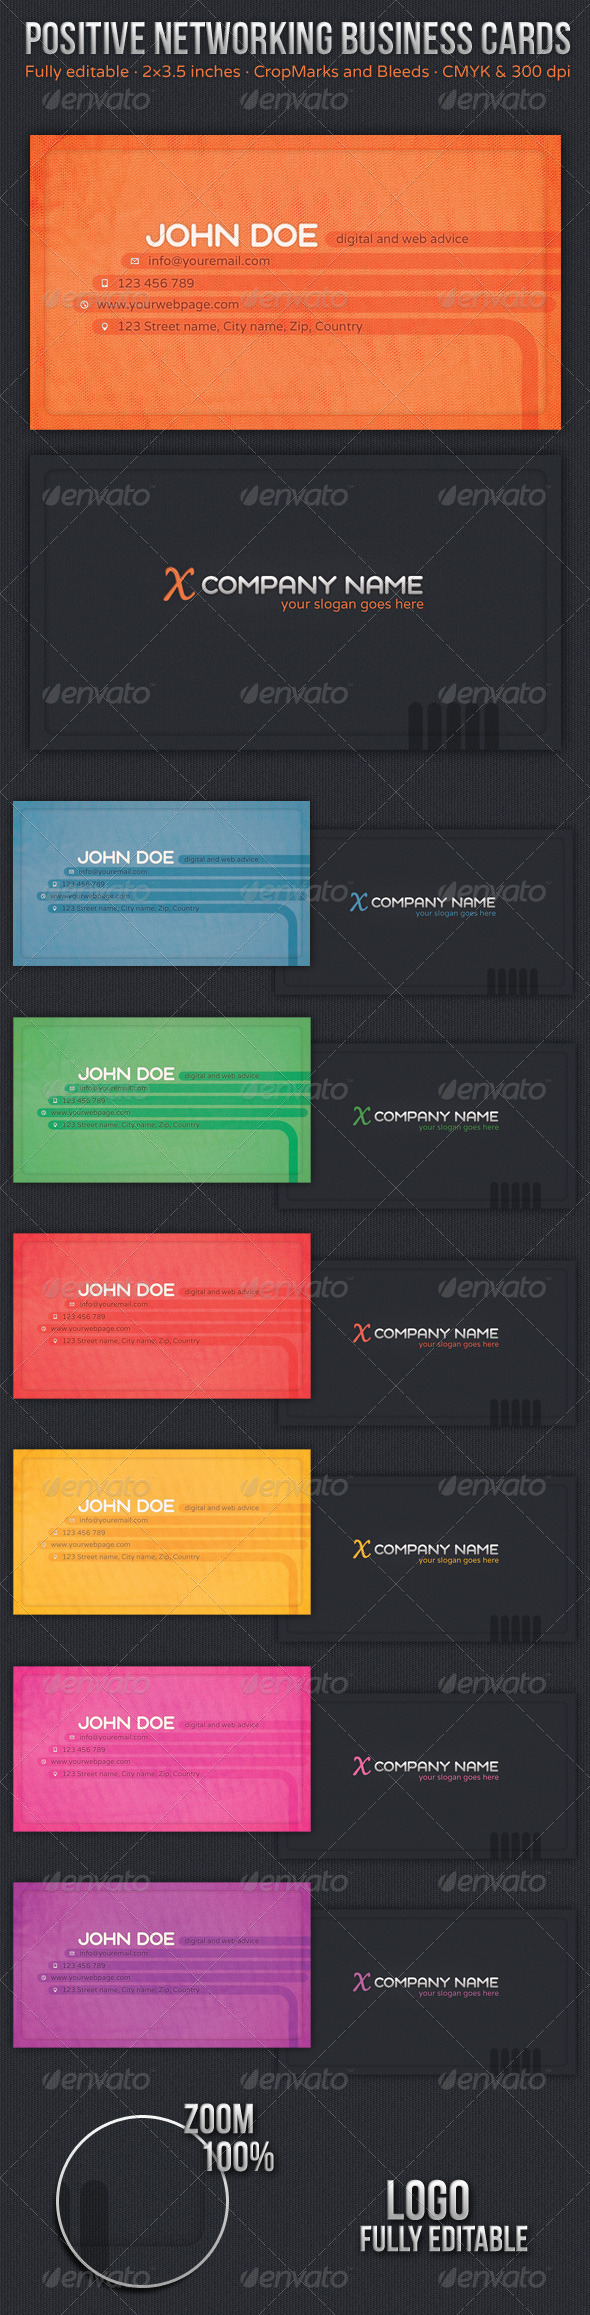 GraphicRiver Positive Networking Business Cards 4943748